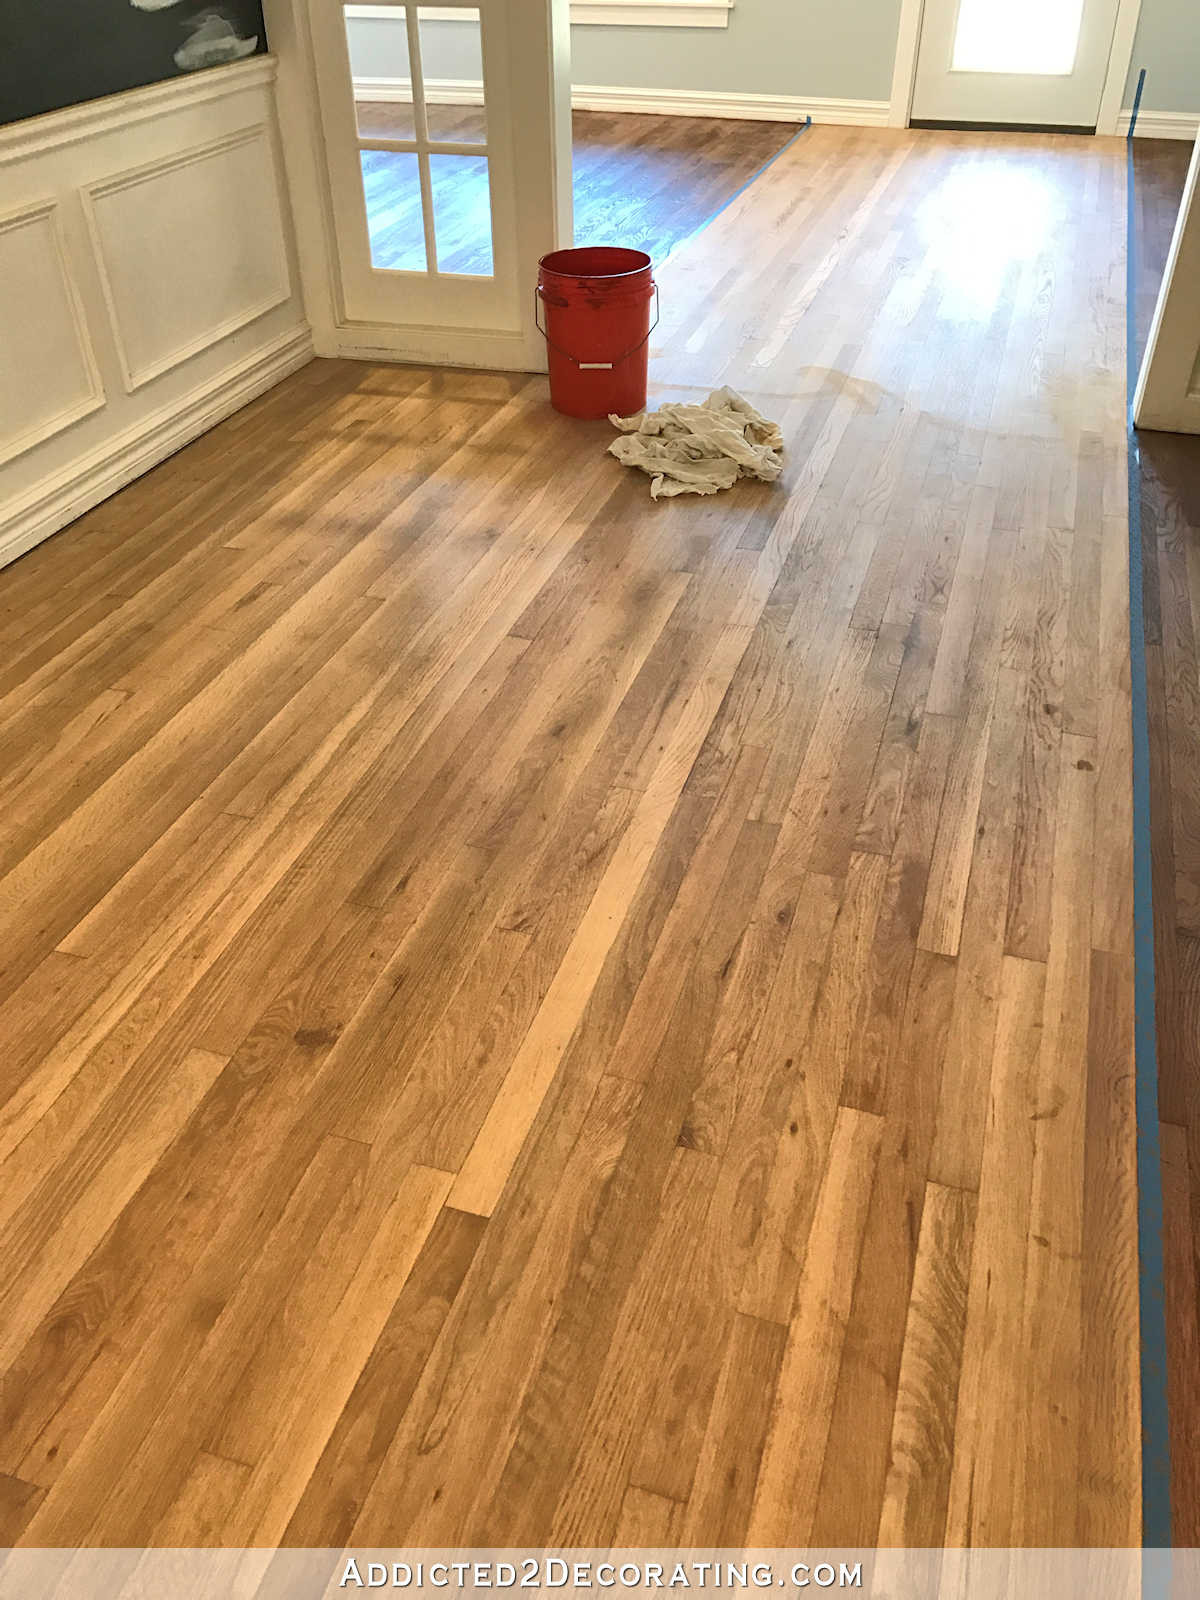 hardwood floor rolling chair protector of adventures in staining my red oak hardwood floors products process in staining red oak hardwood floors 8 entryway and music room wood conditioner